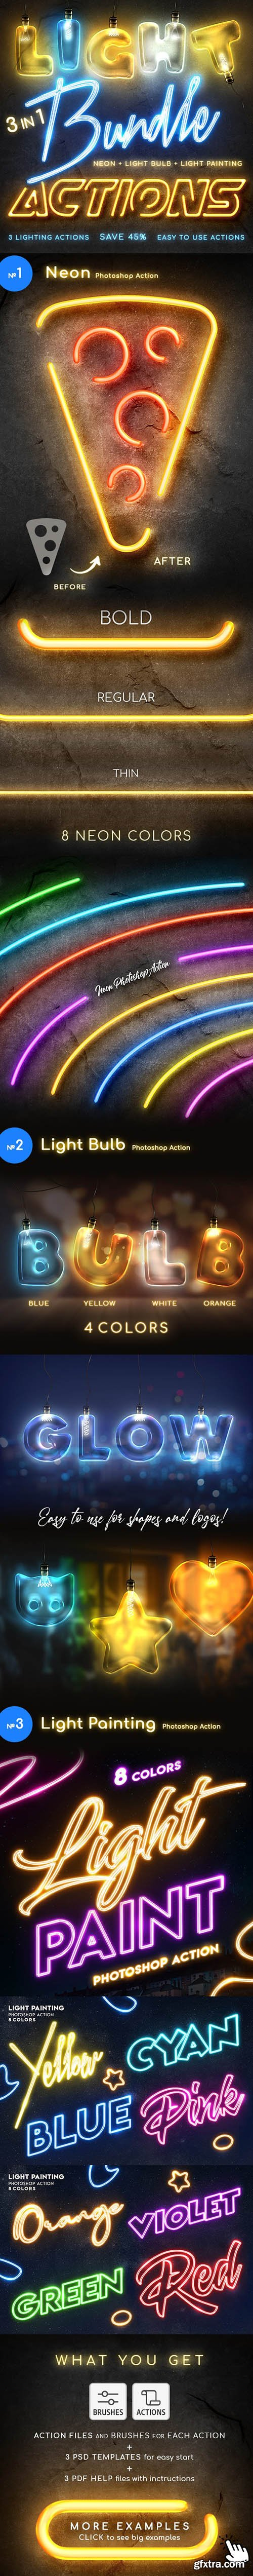 GraphicRiver - Lighting Photoshop Actions Bundle 25882789